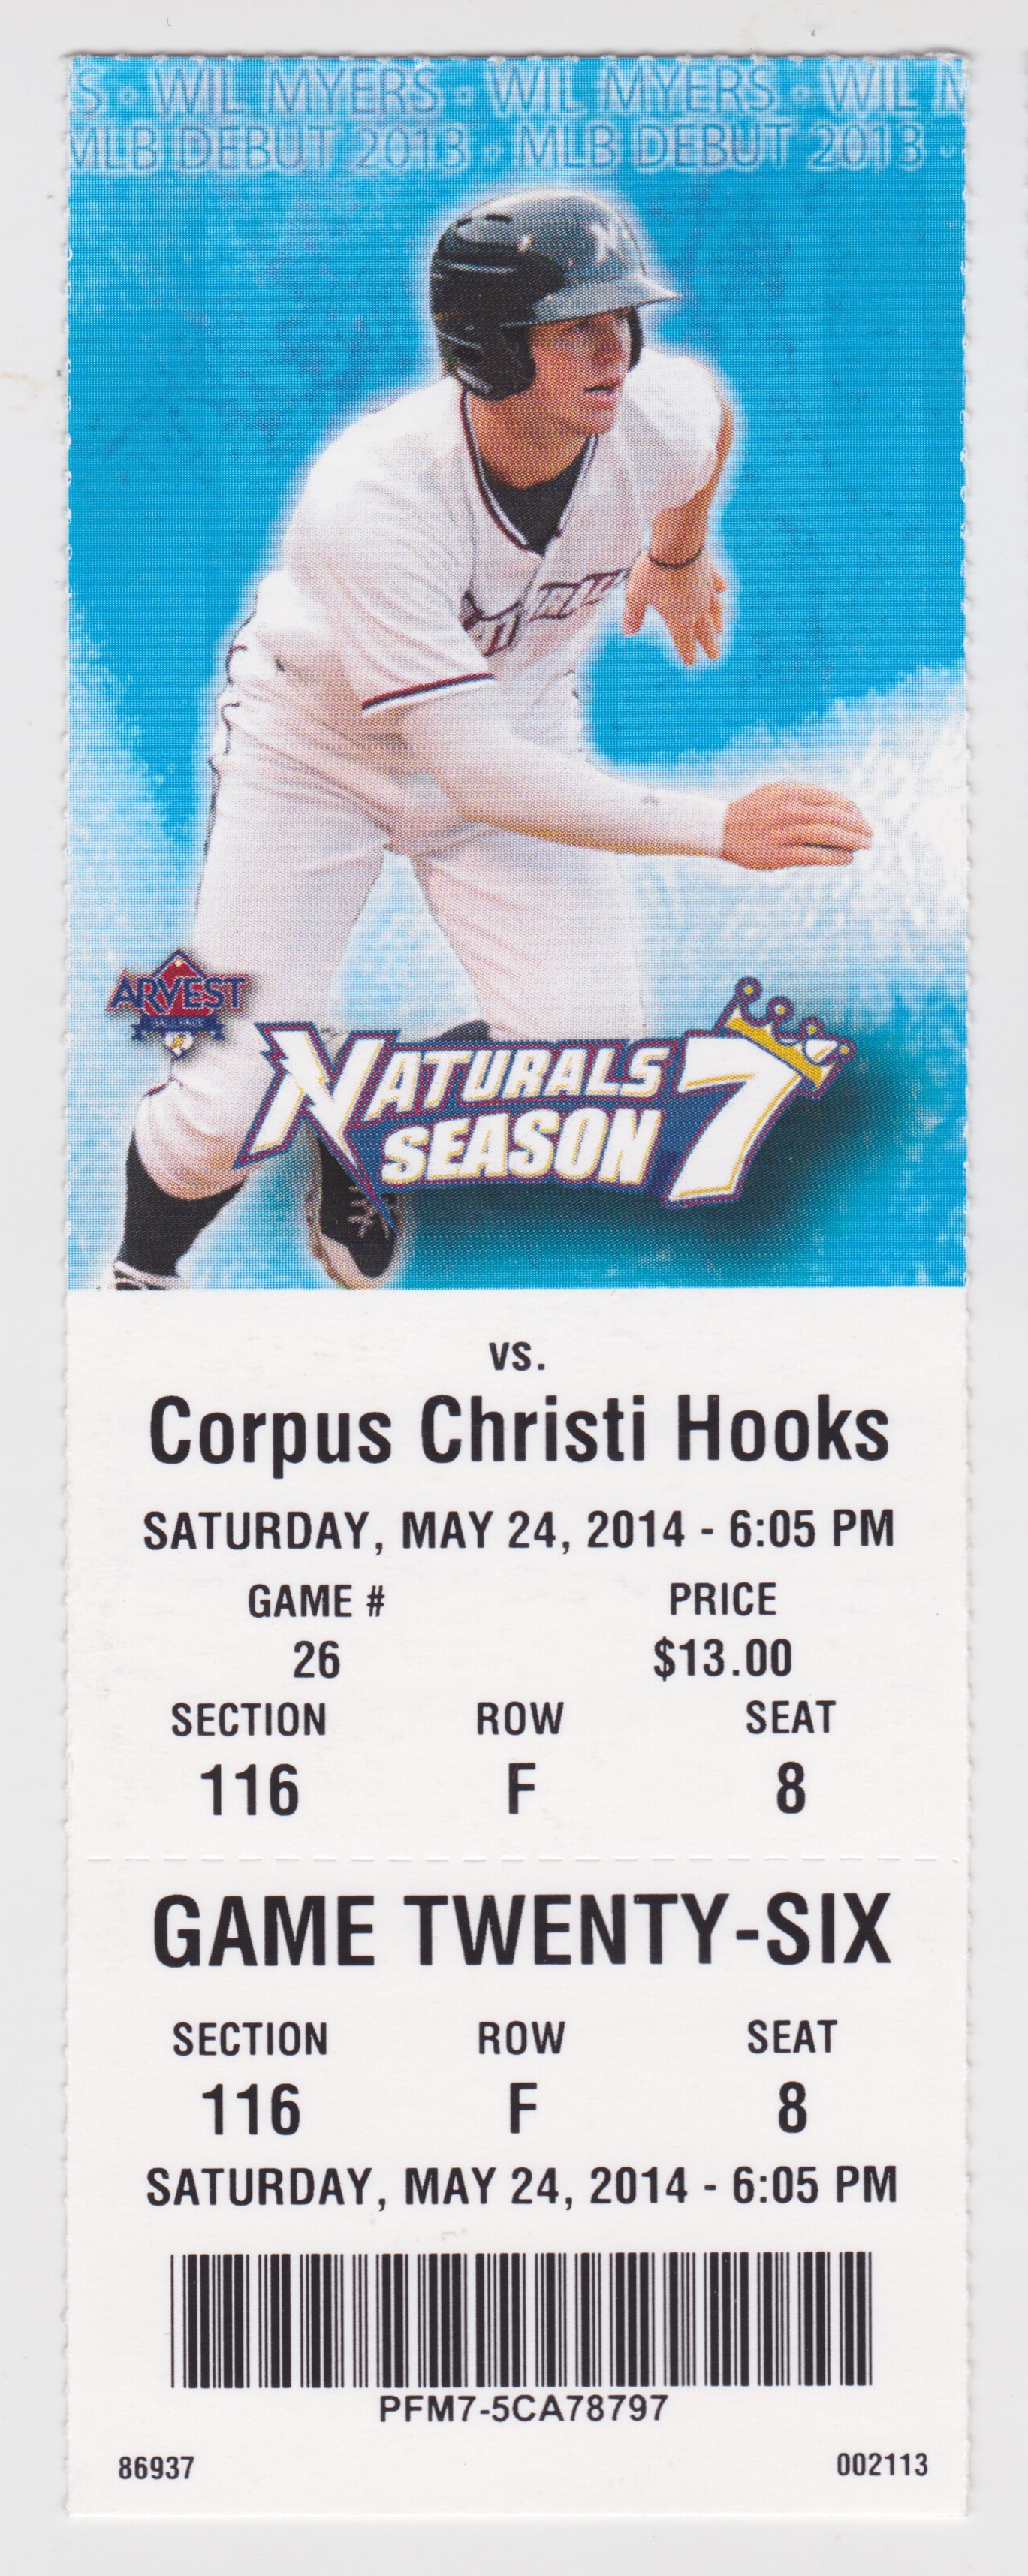 2014 Northwest Arkansas Naturals ticket stub vs Corpus Christi Hooks